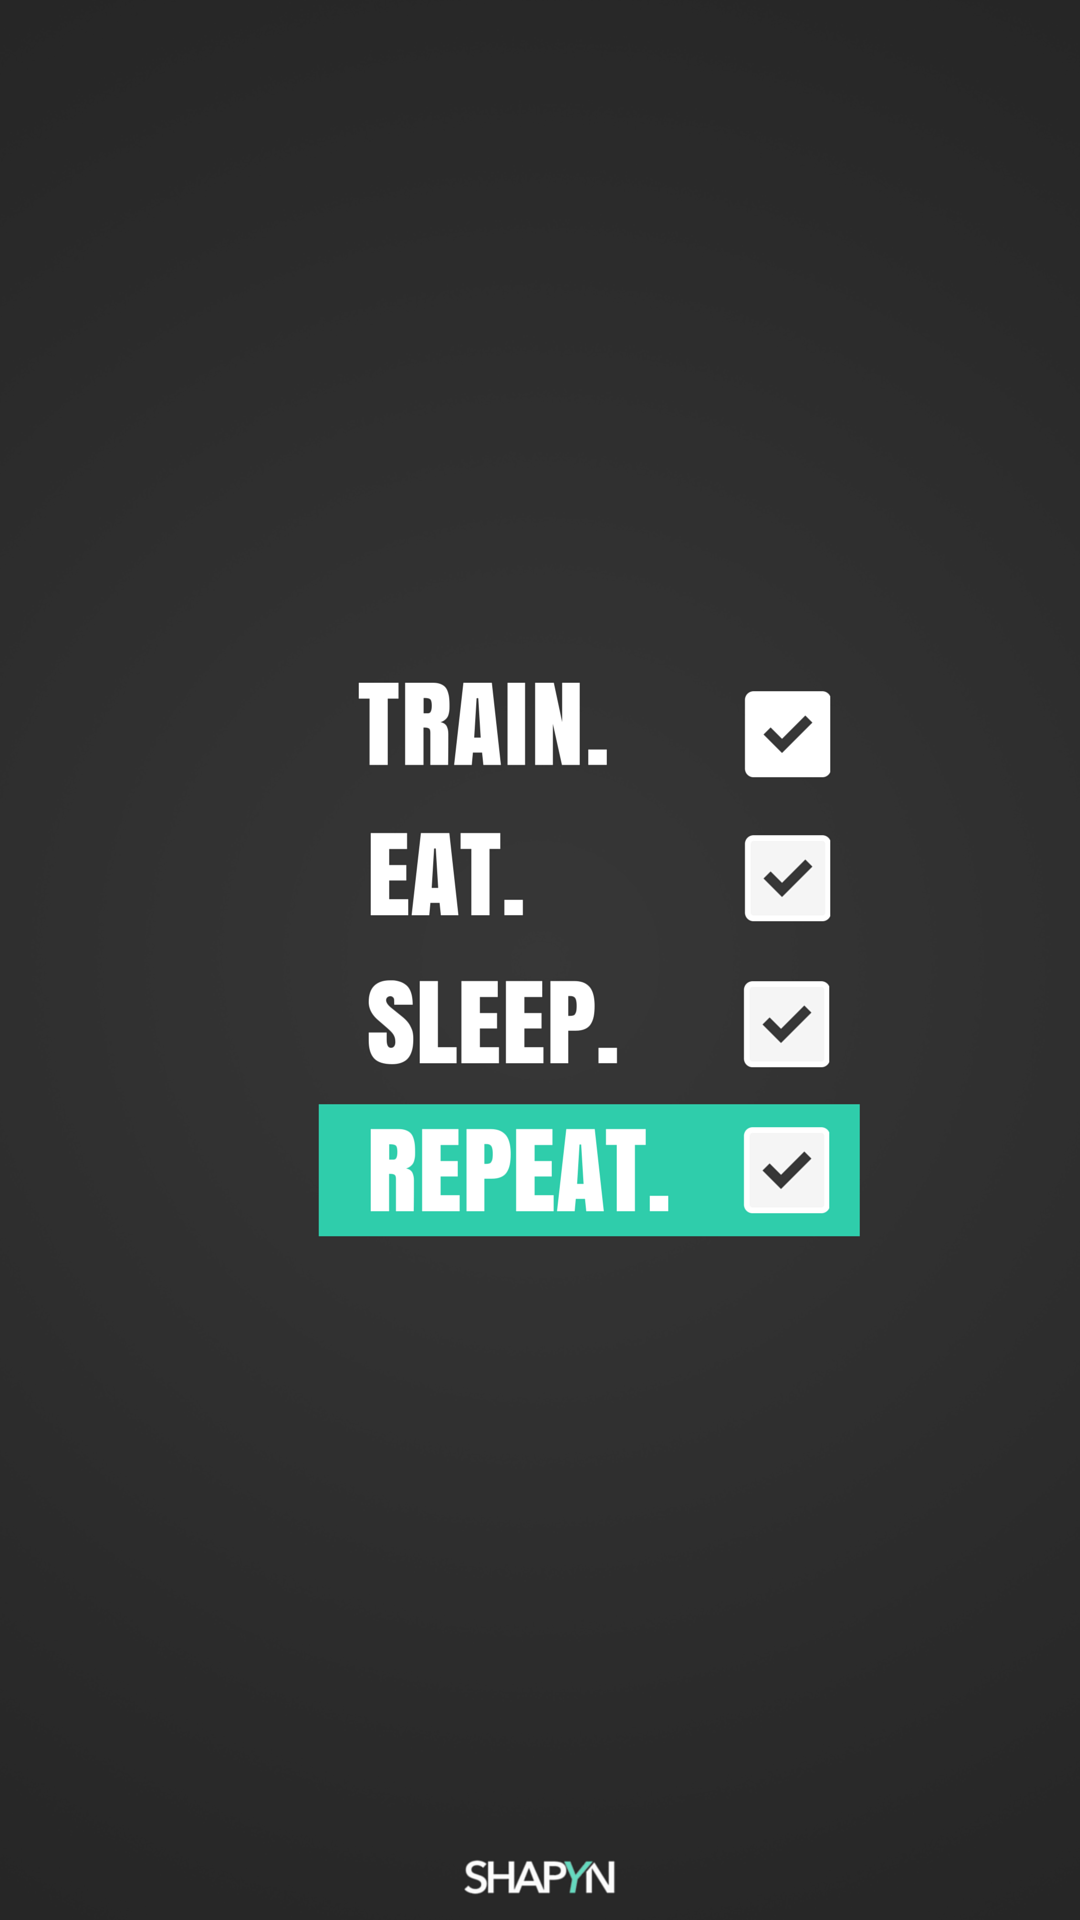 train.eat.sleep